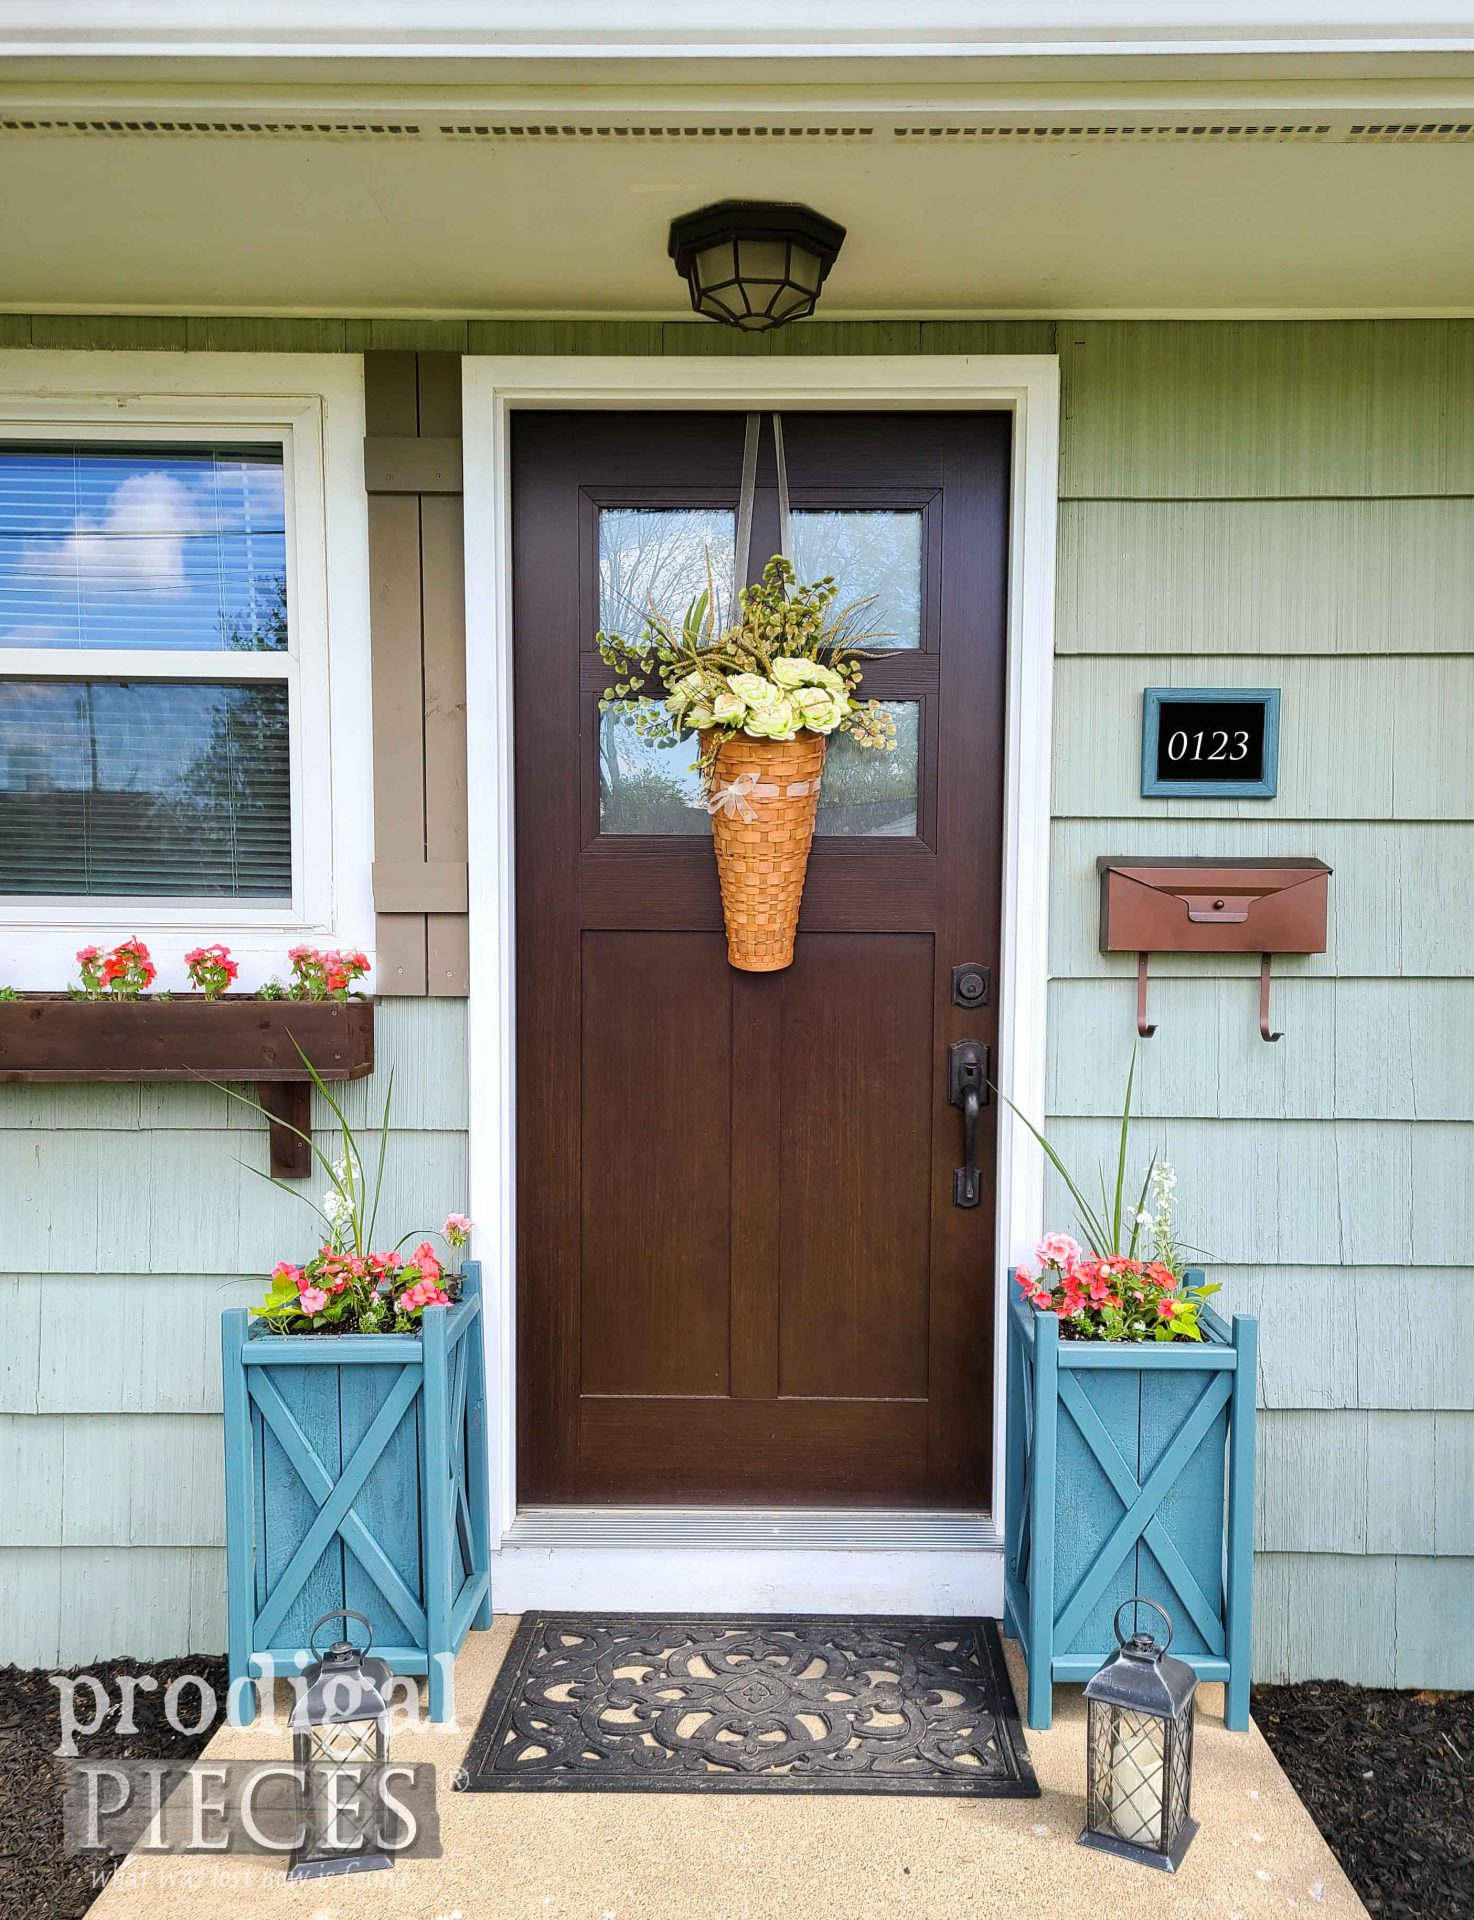 Rustic Farmhouse Style DIY Door Curb Appeal by Larissa of Prodigal Pieces | prodigalpieces.com #prodigalpieces #farmhouse #garden #diy #curbappeal